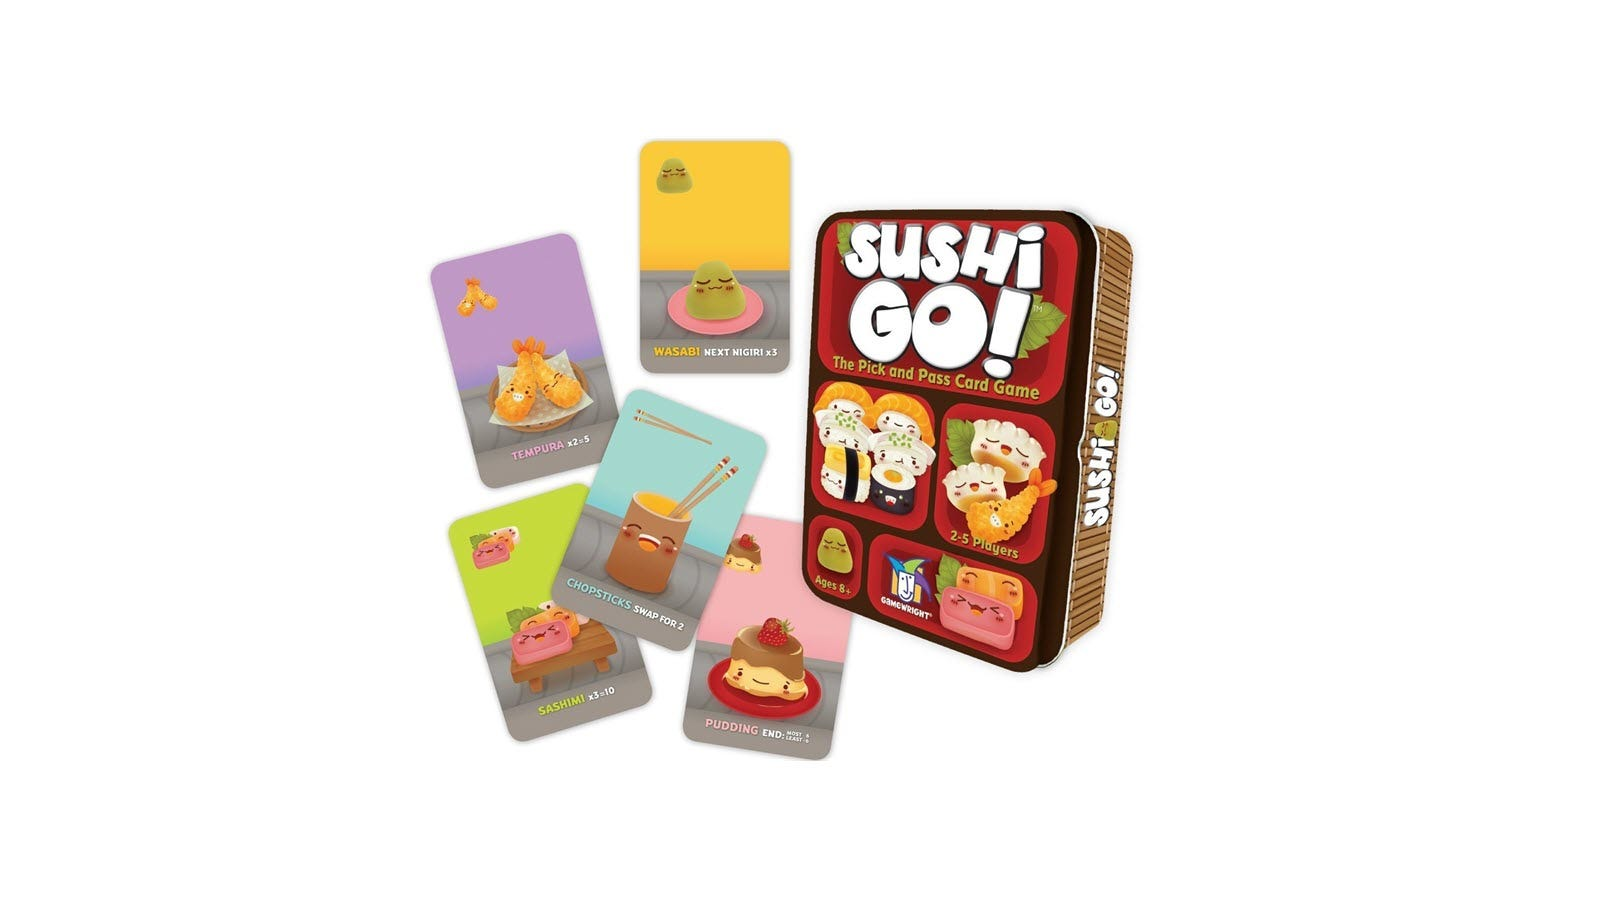 The Sushi Go! card game box, and five cards from the game.